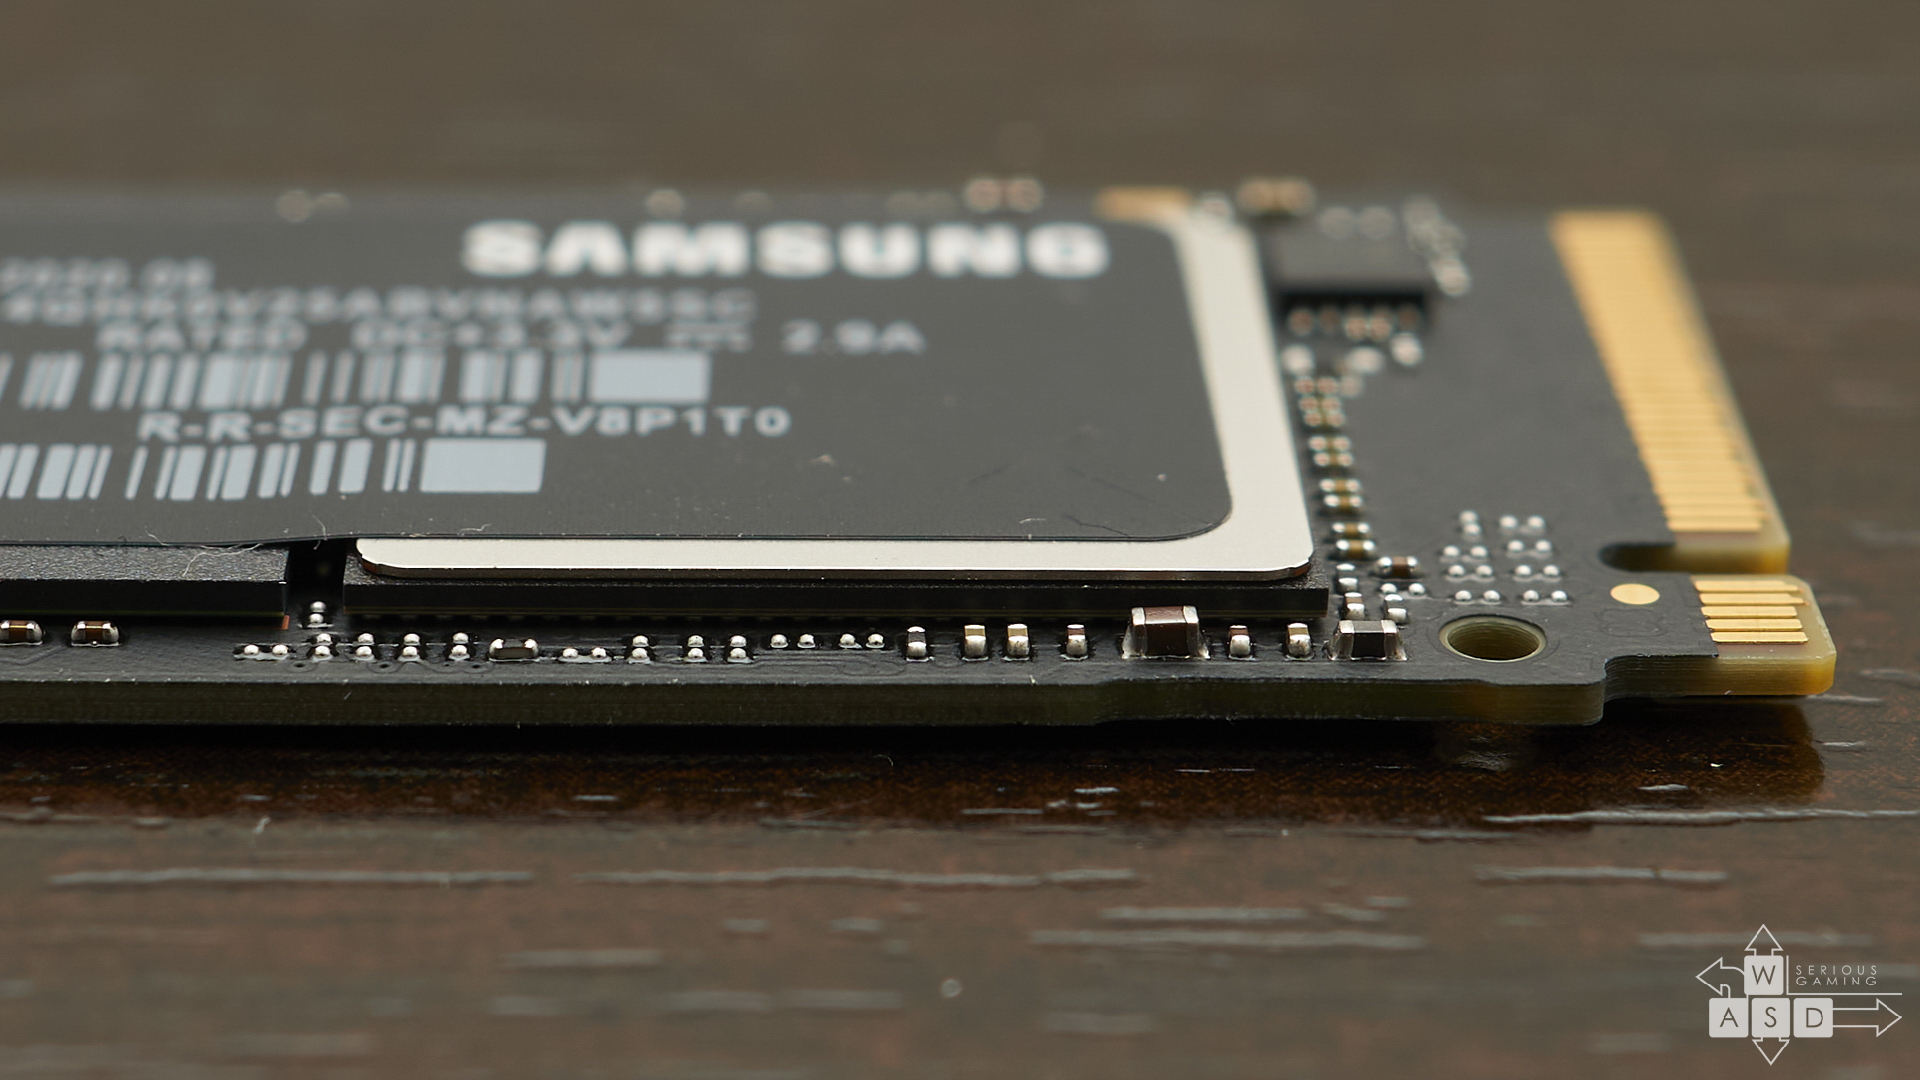 Samsung PCIe® 4.0 NVMe™ SSD 980 PRO review | WASD